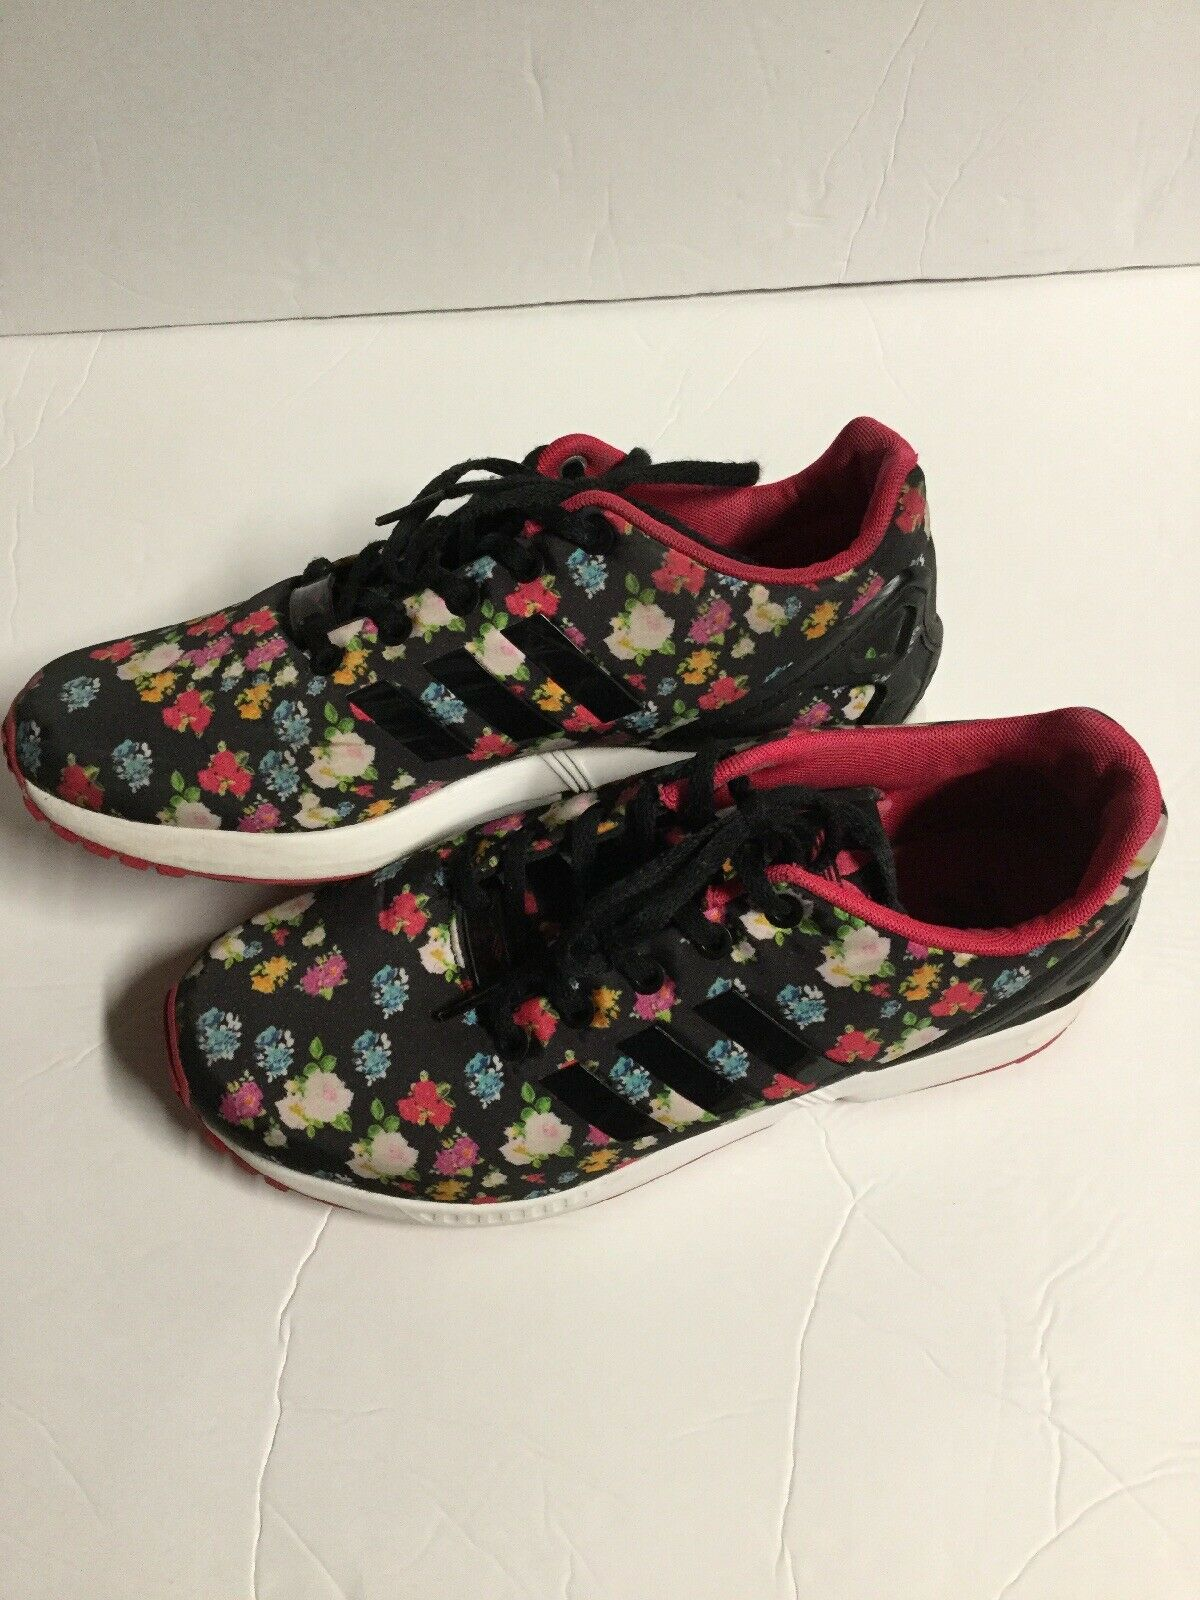 Adidas Torsion Sneakers Women's Size 7 ZX Flux Floral Multi color Sneakers.U27